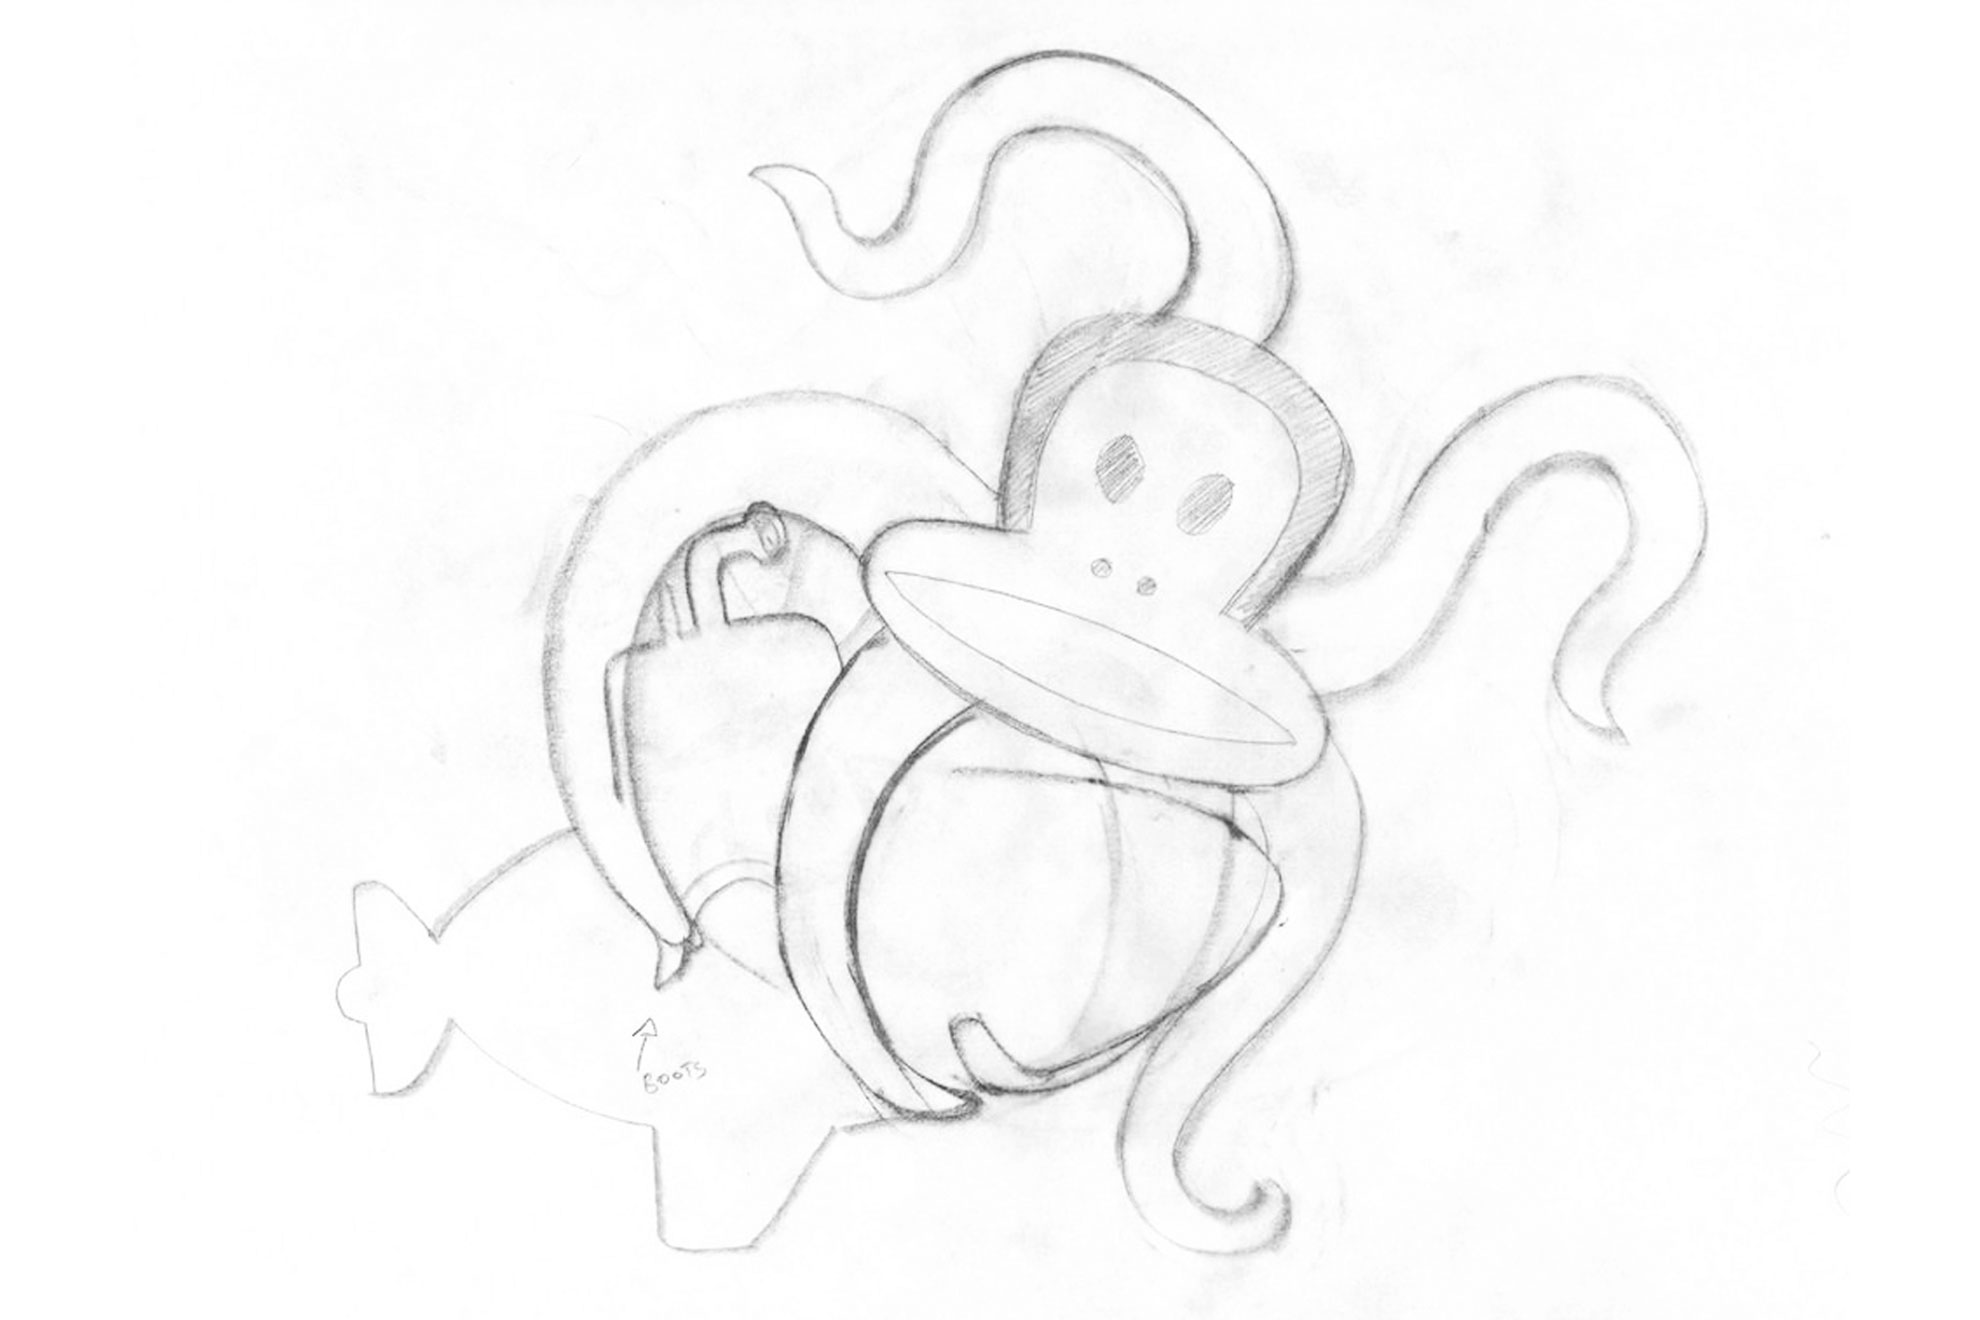 Paul Frank Julius Octopus Sketch